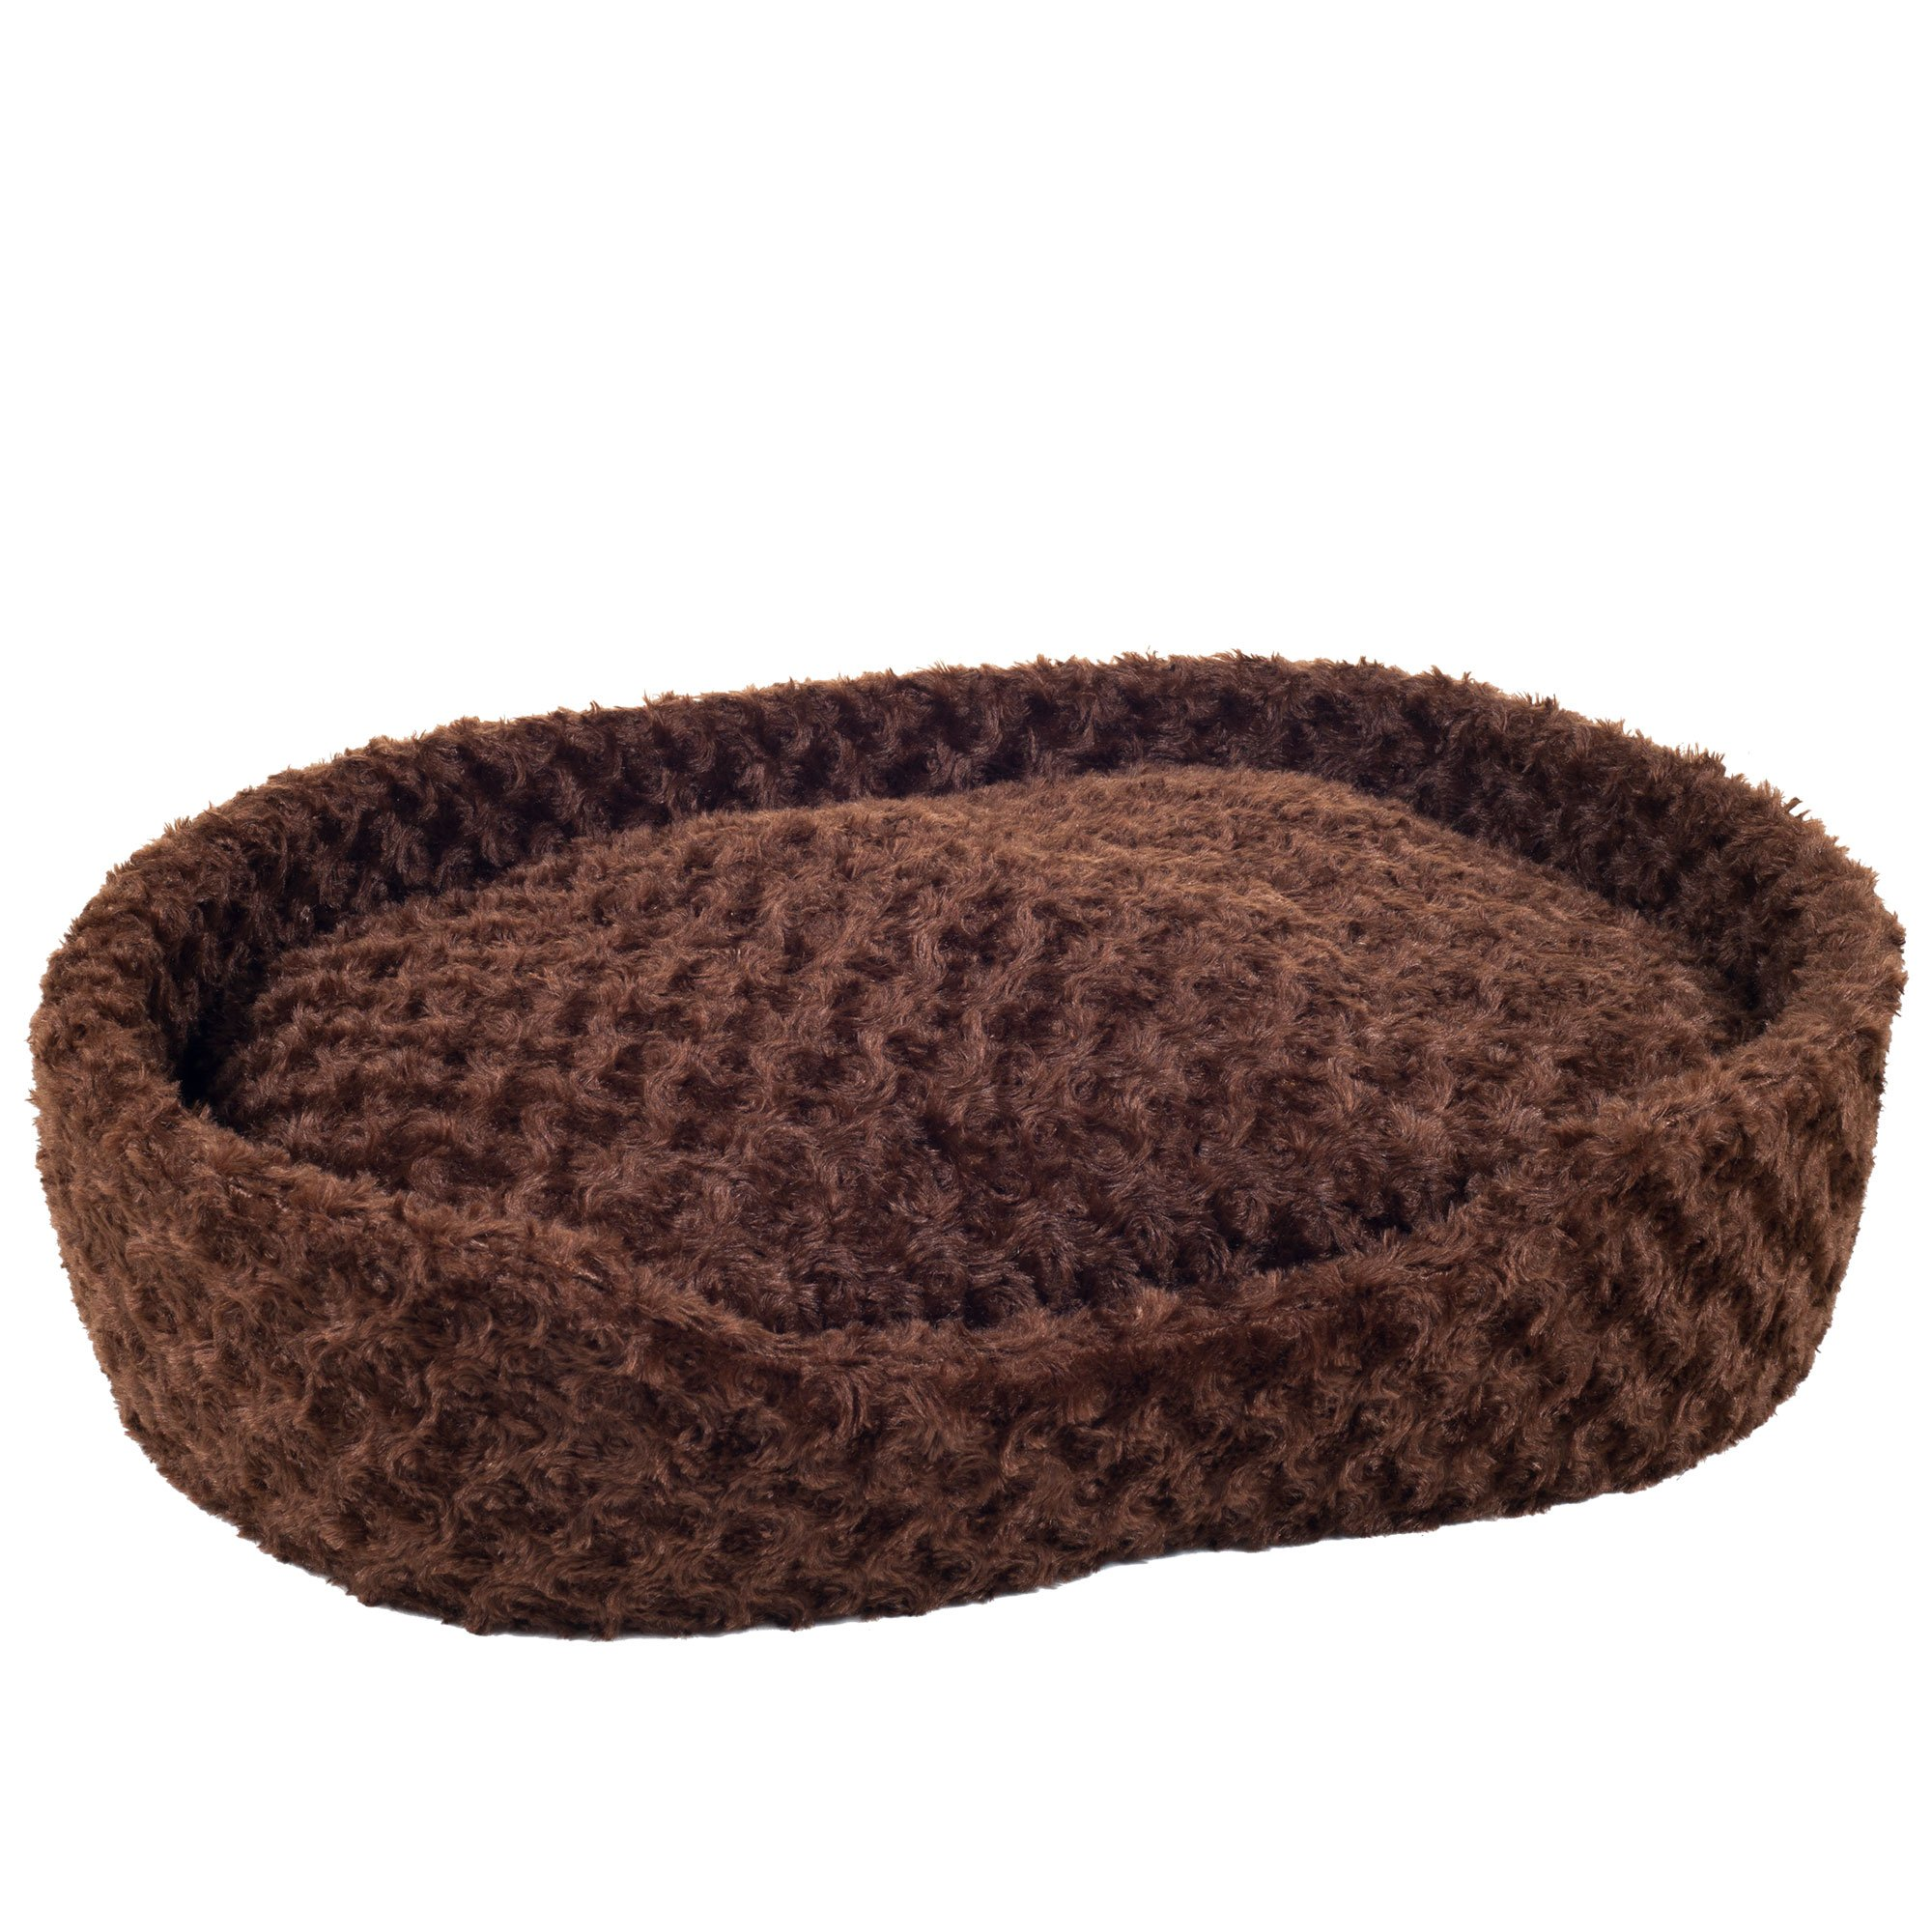 PETMAKER Small Cuddle Round Plush Pet Bed - Brown